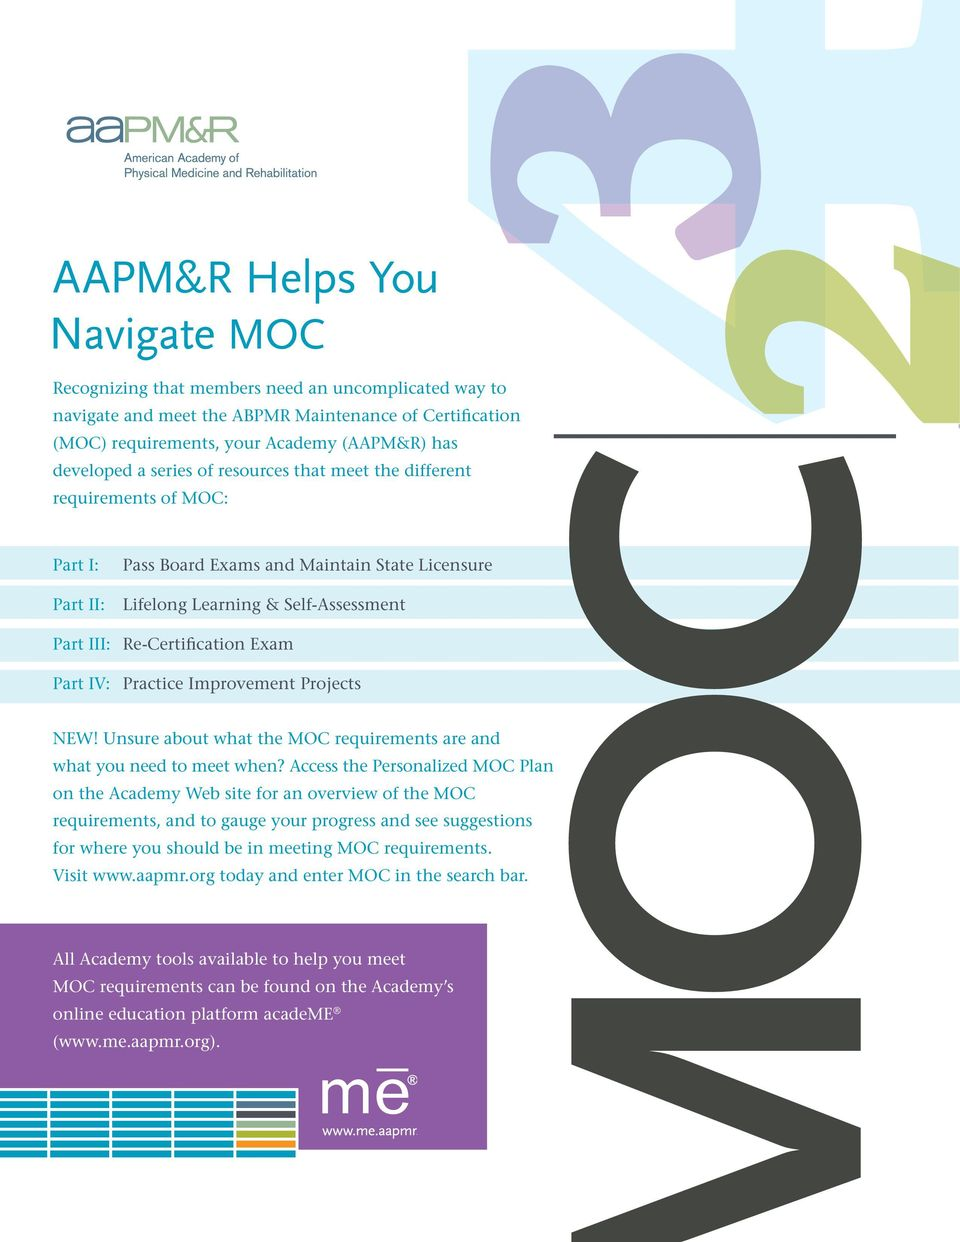 Part IV: Practice Improvement Projects NEW! Unsure about what the MOC requirements are and what you need to meet when?